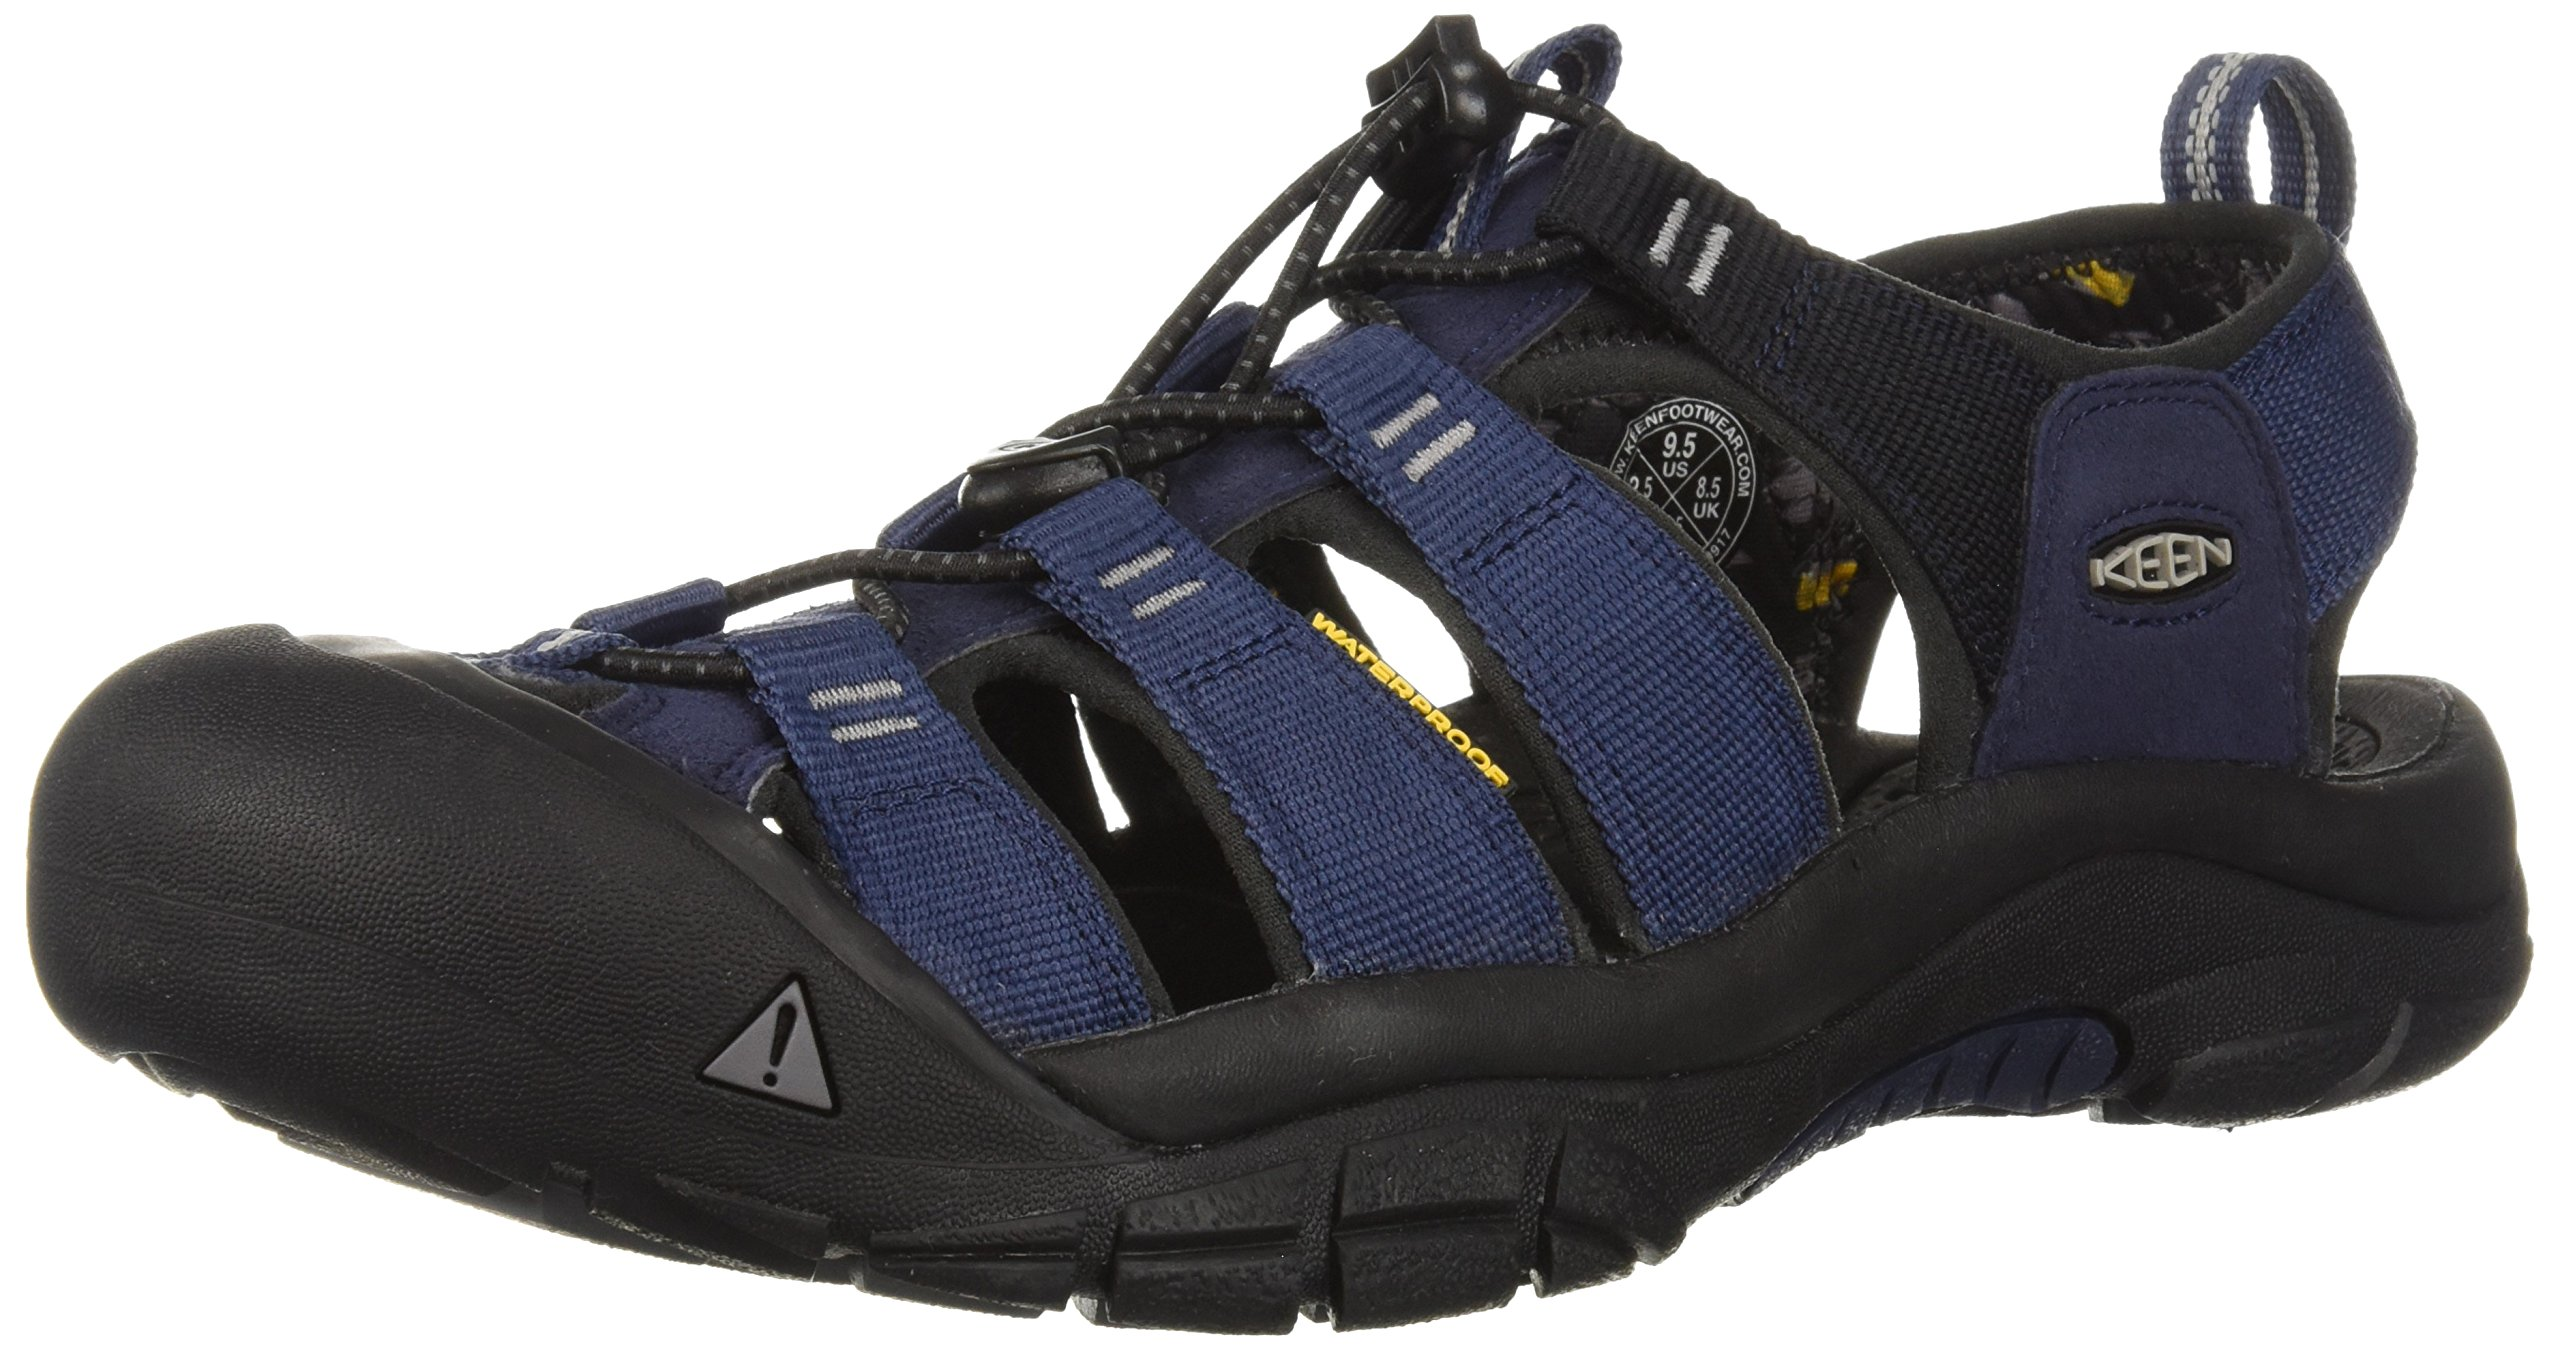 KEEN Men's Newport Hydro-M Sandal, Dress Blues/Steel Grey, 10.5 M US